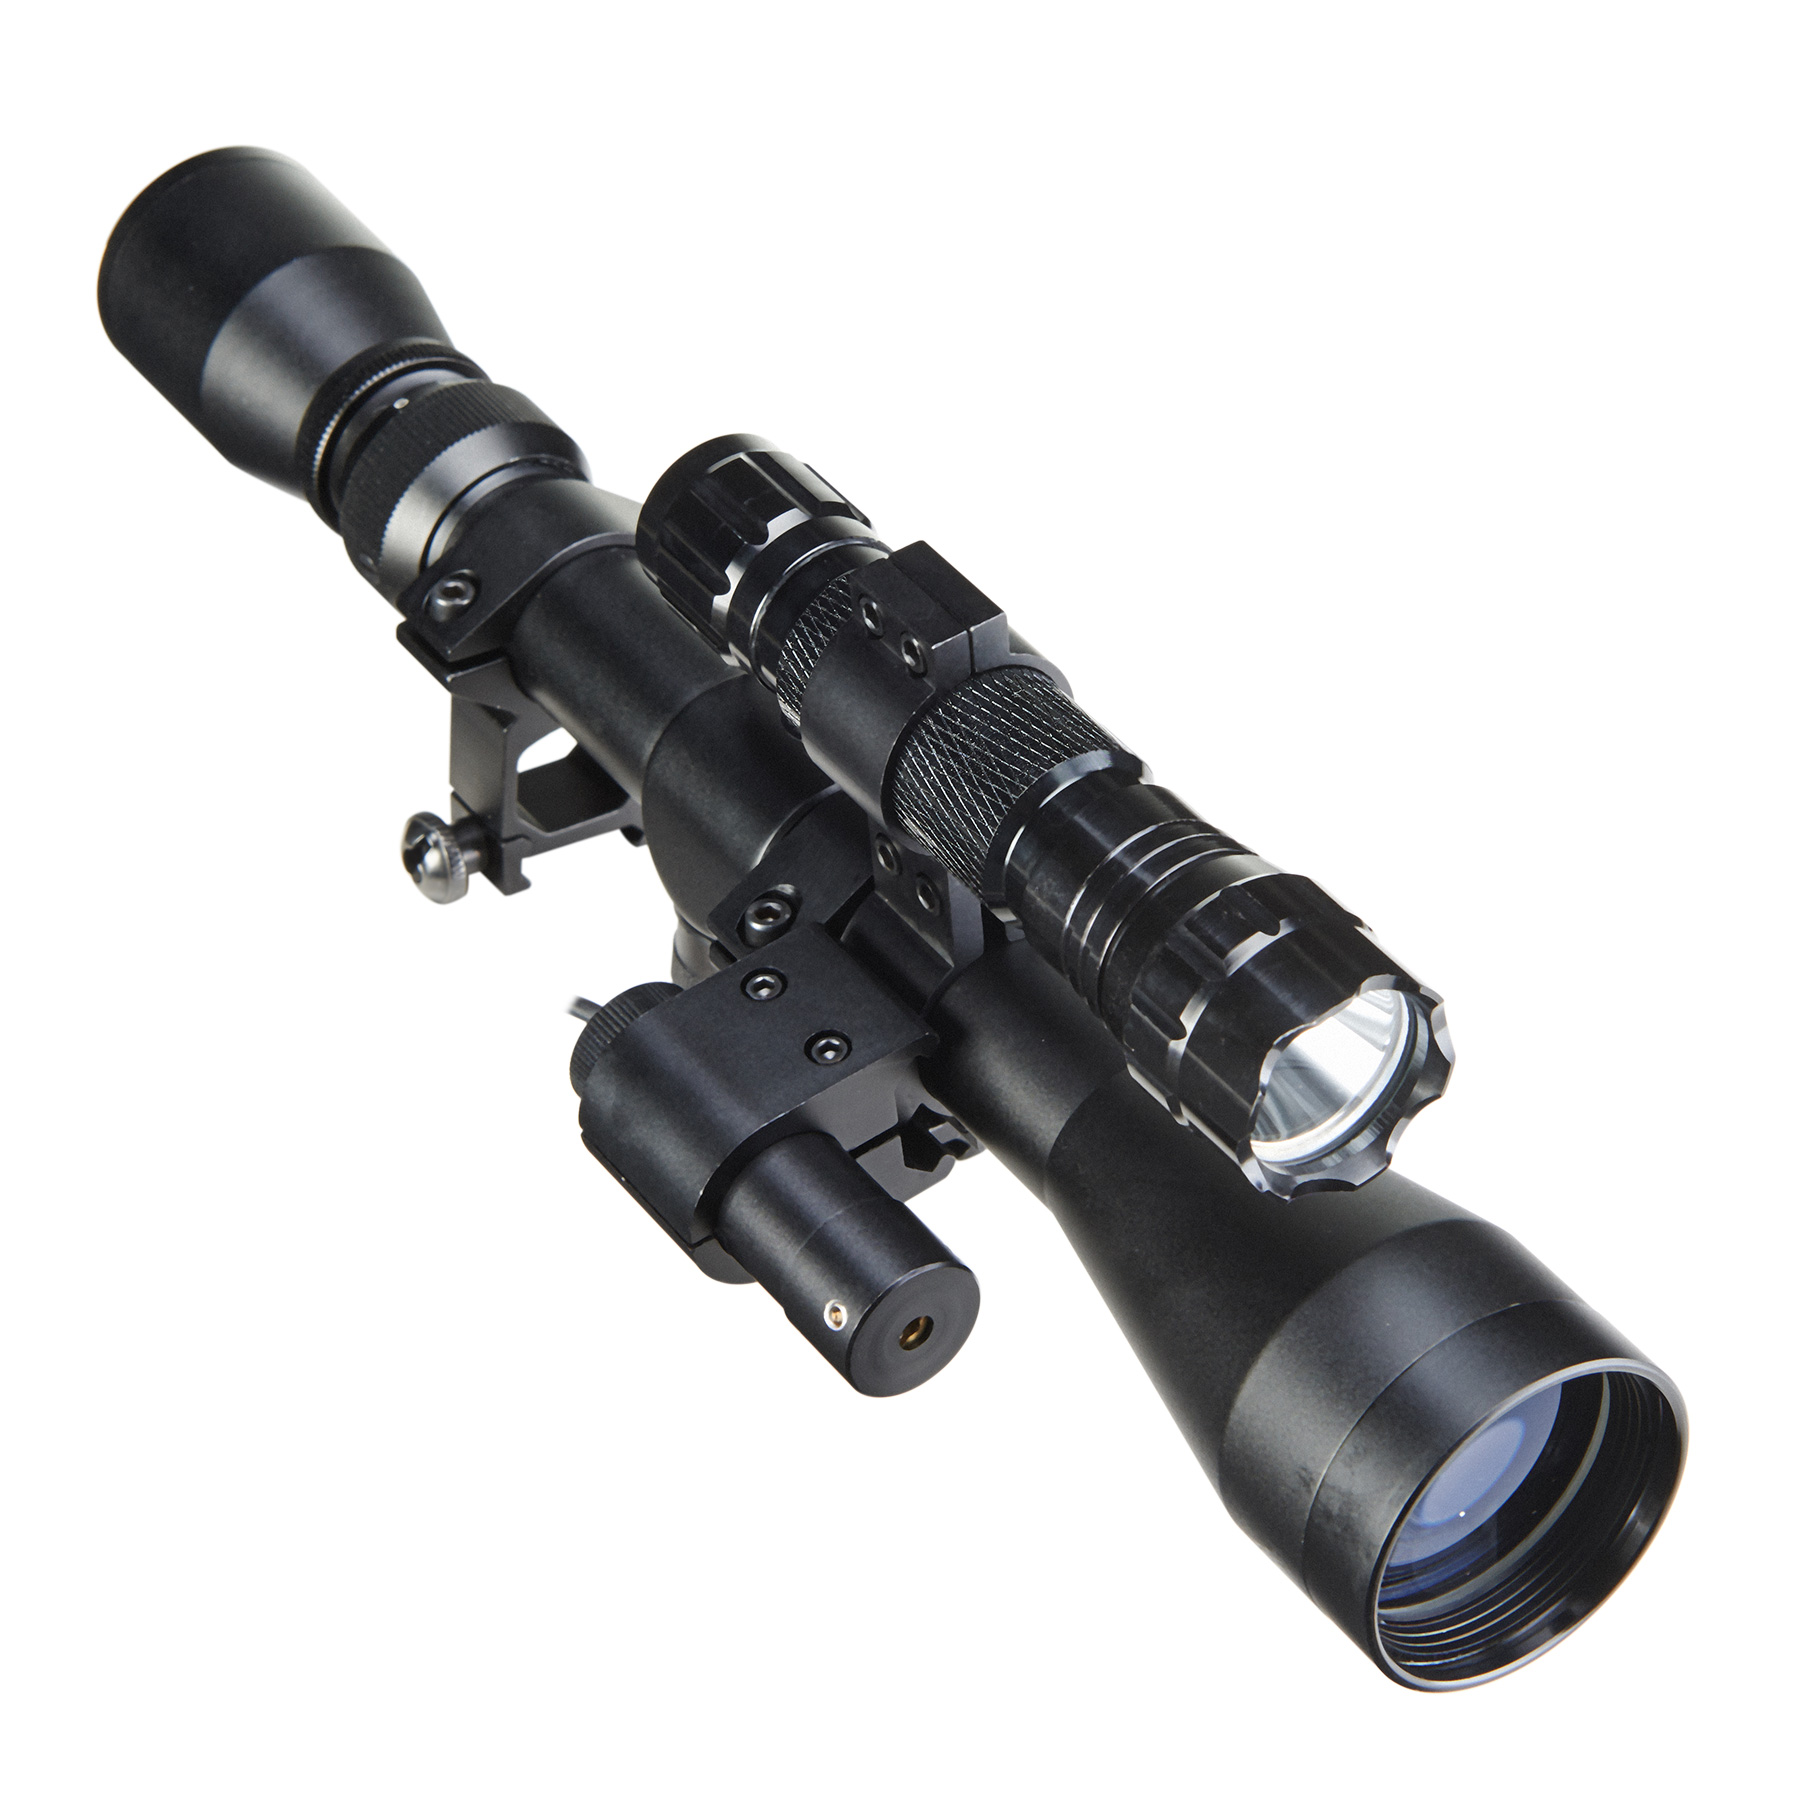 Tactical Cross Reflex Riflescope with Laser Sight 3-9X40mm for Hunting